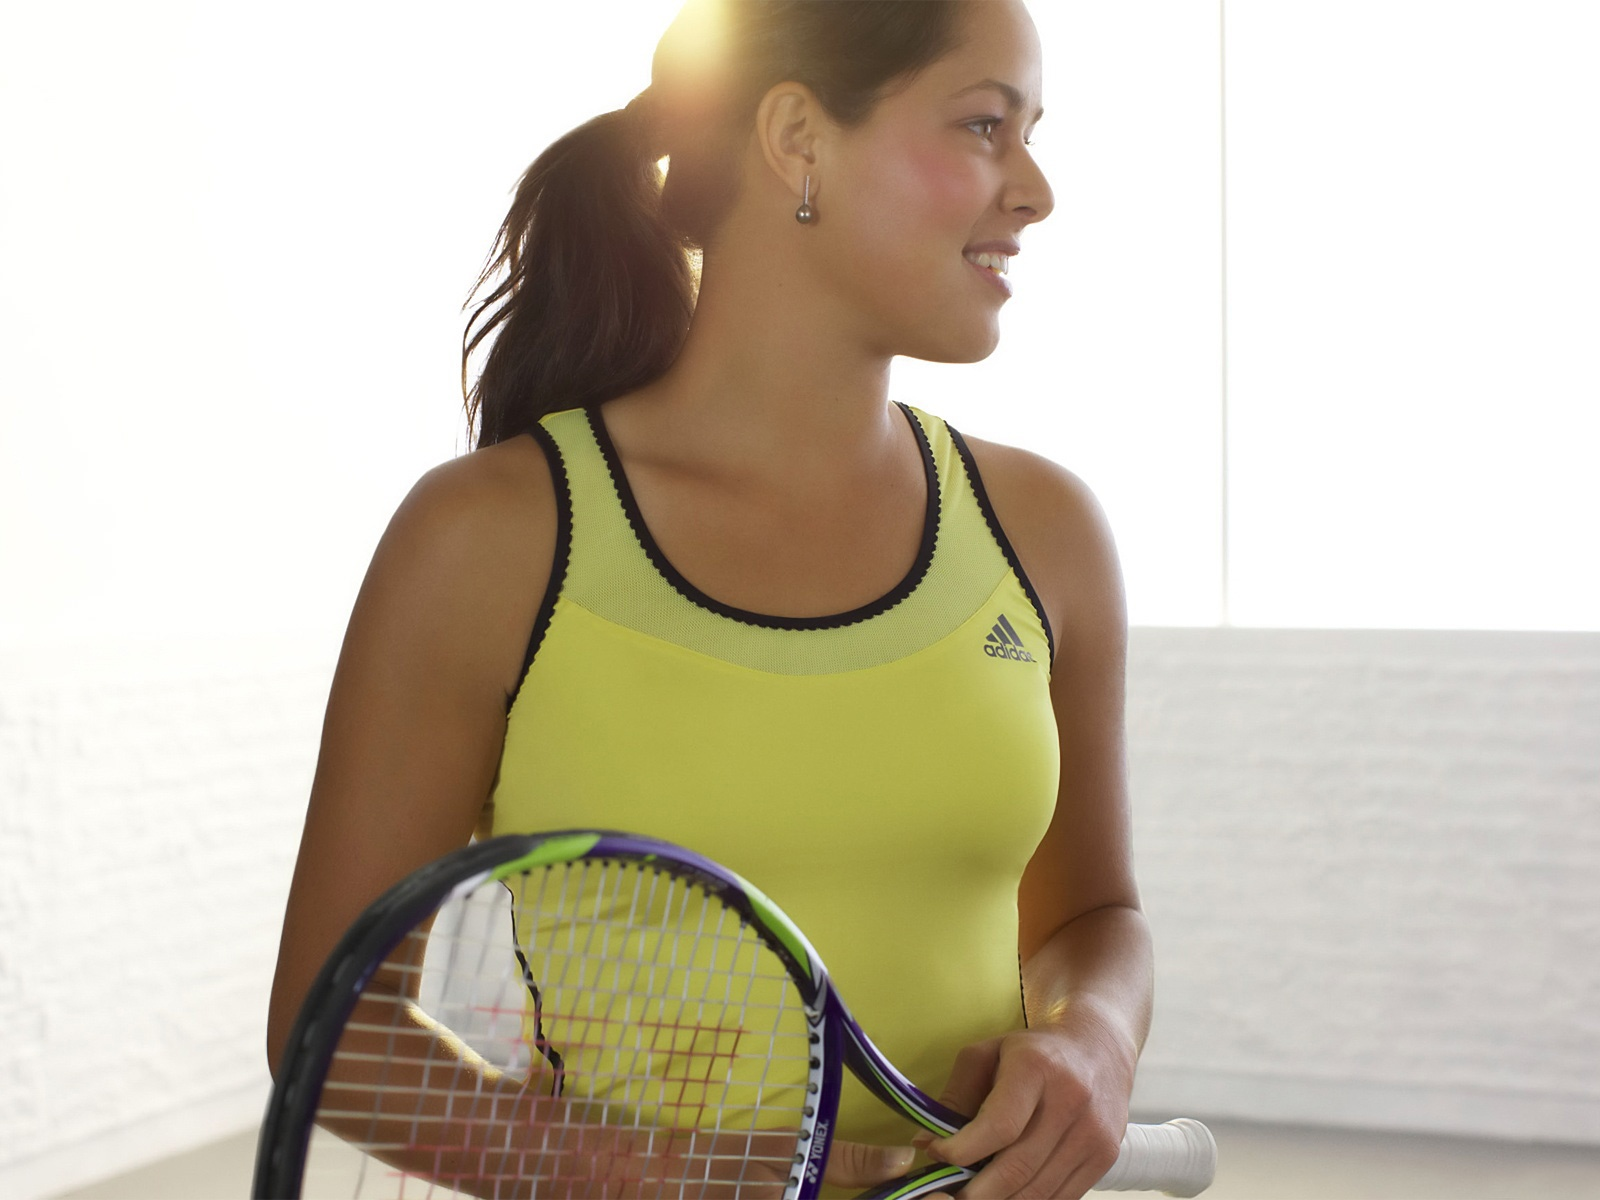 ana_ivanovic wallpapers hd A3